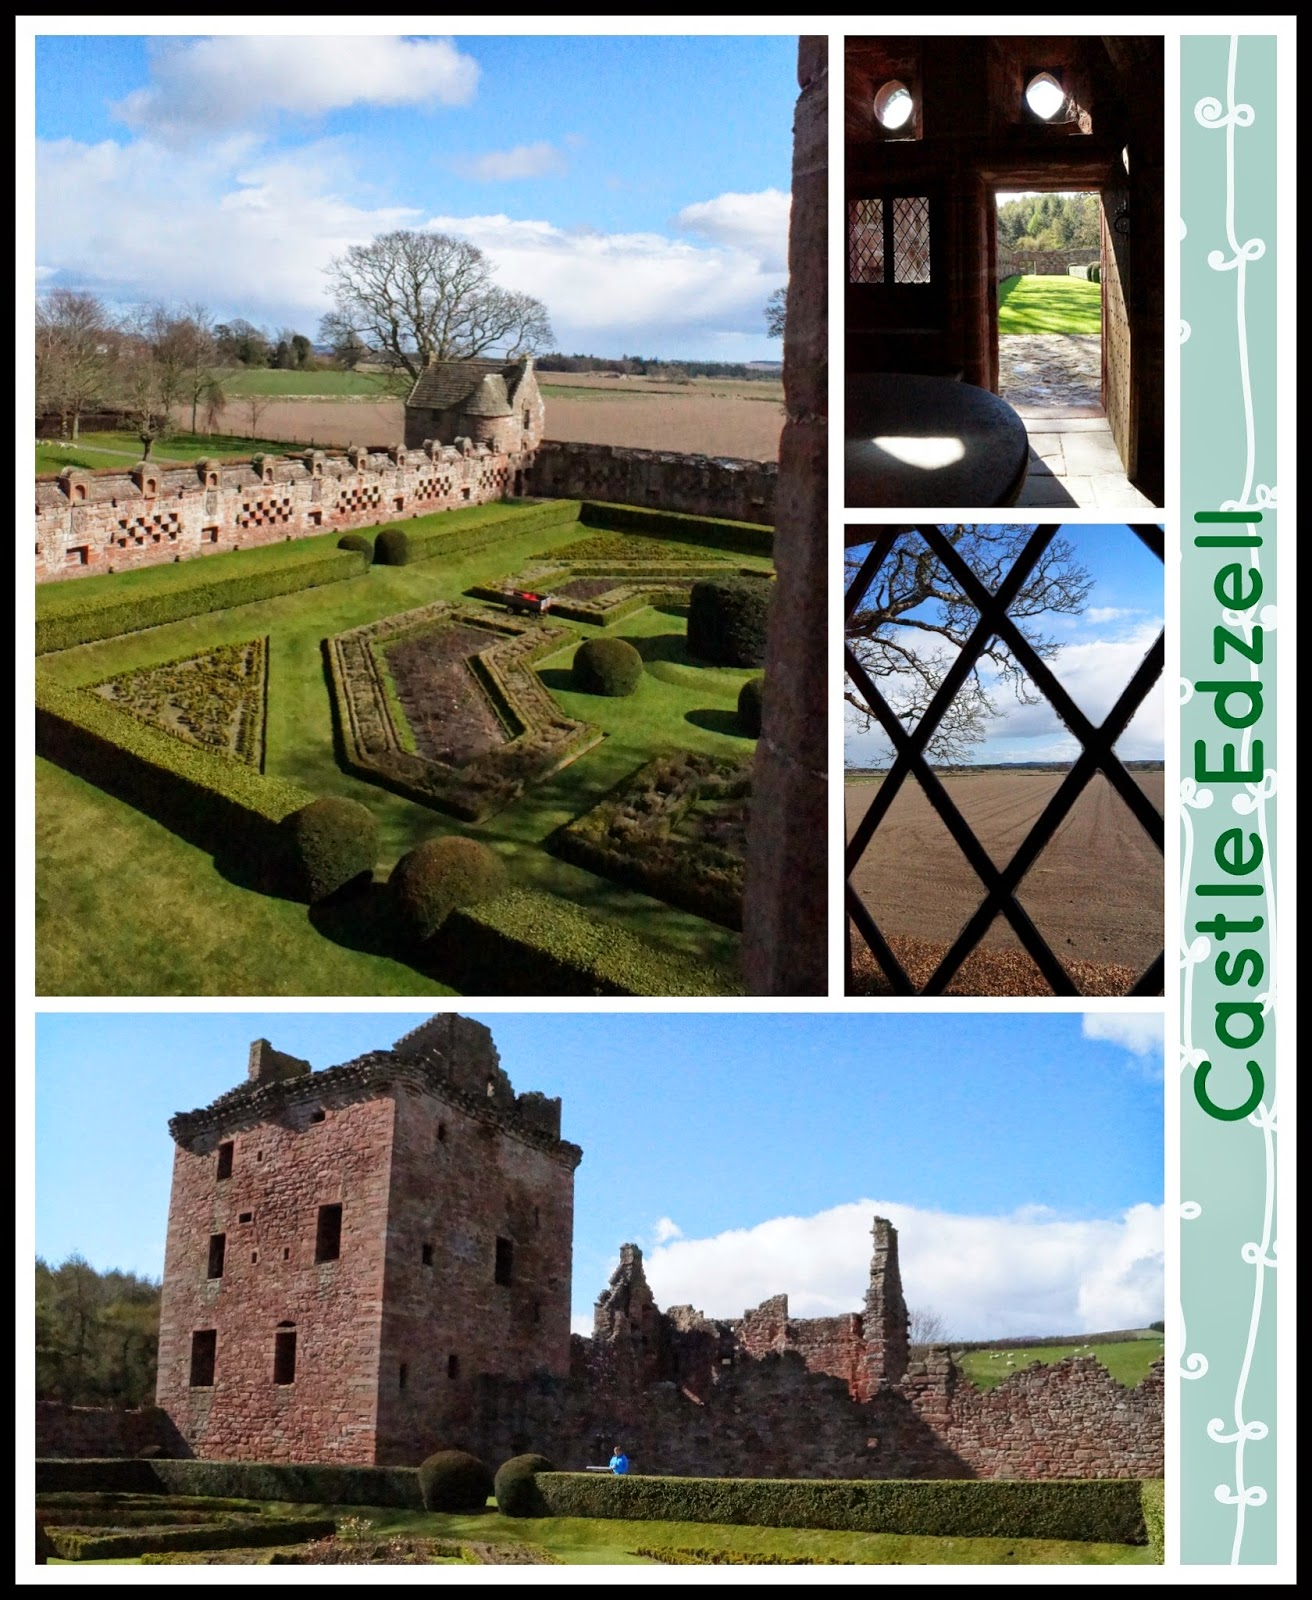 Castle Edzell collage - 'growourown.blogspot.com' ~ An allotment blog